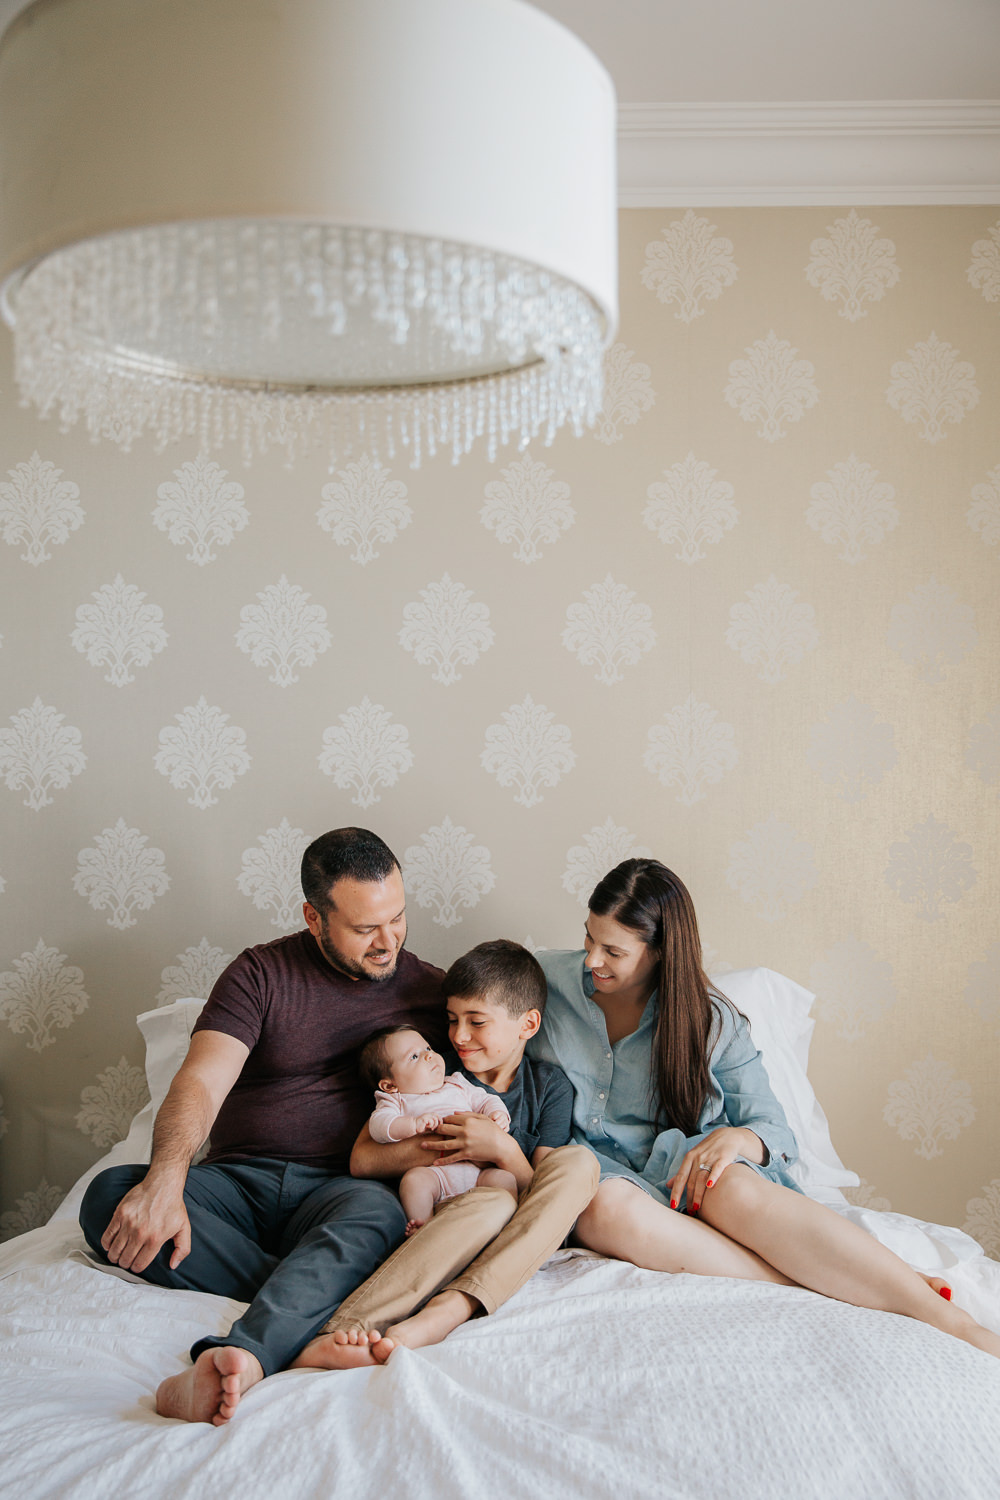 family of four sitting on bed, 9 year old boy holding 2 month old baby sister in pink onesie as mom and dad snuggled next to them - Barrie Lifestyle Photography